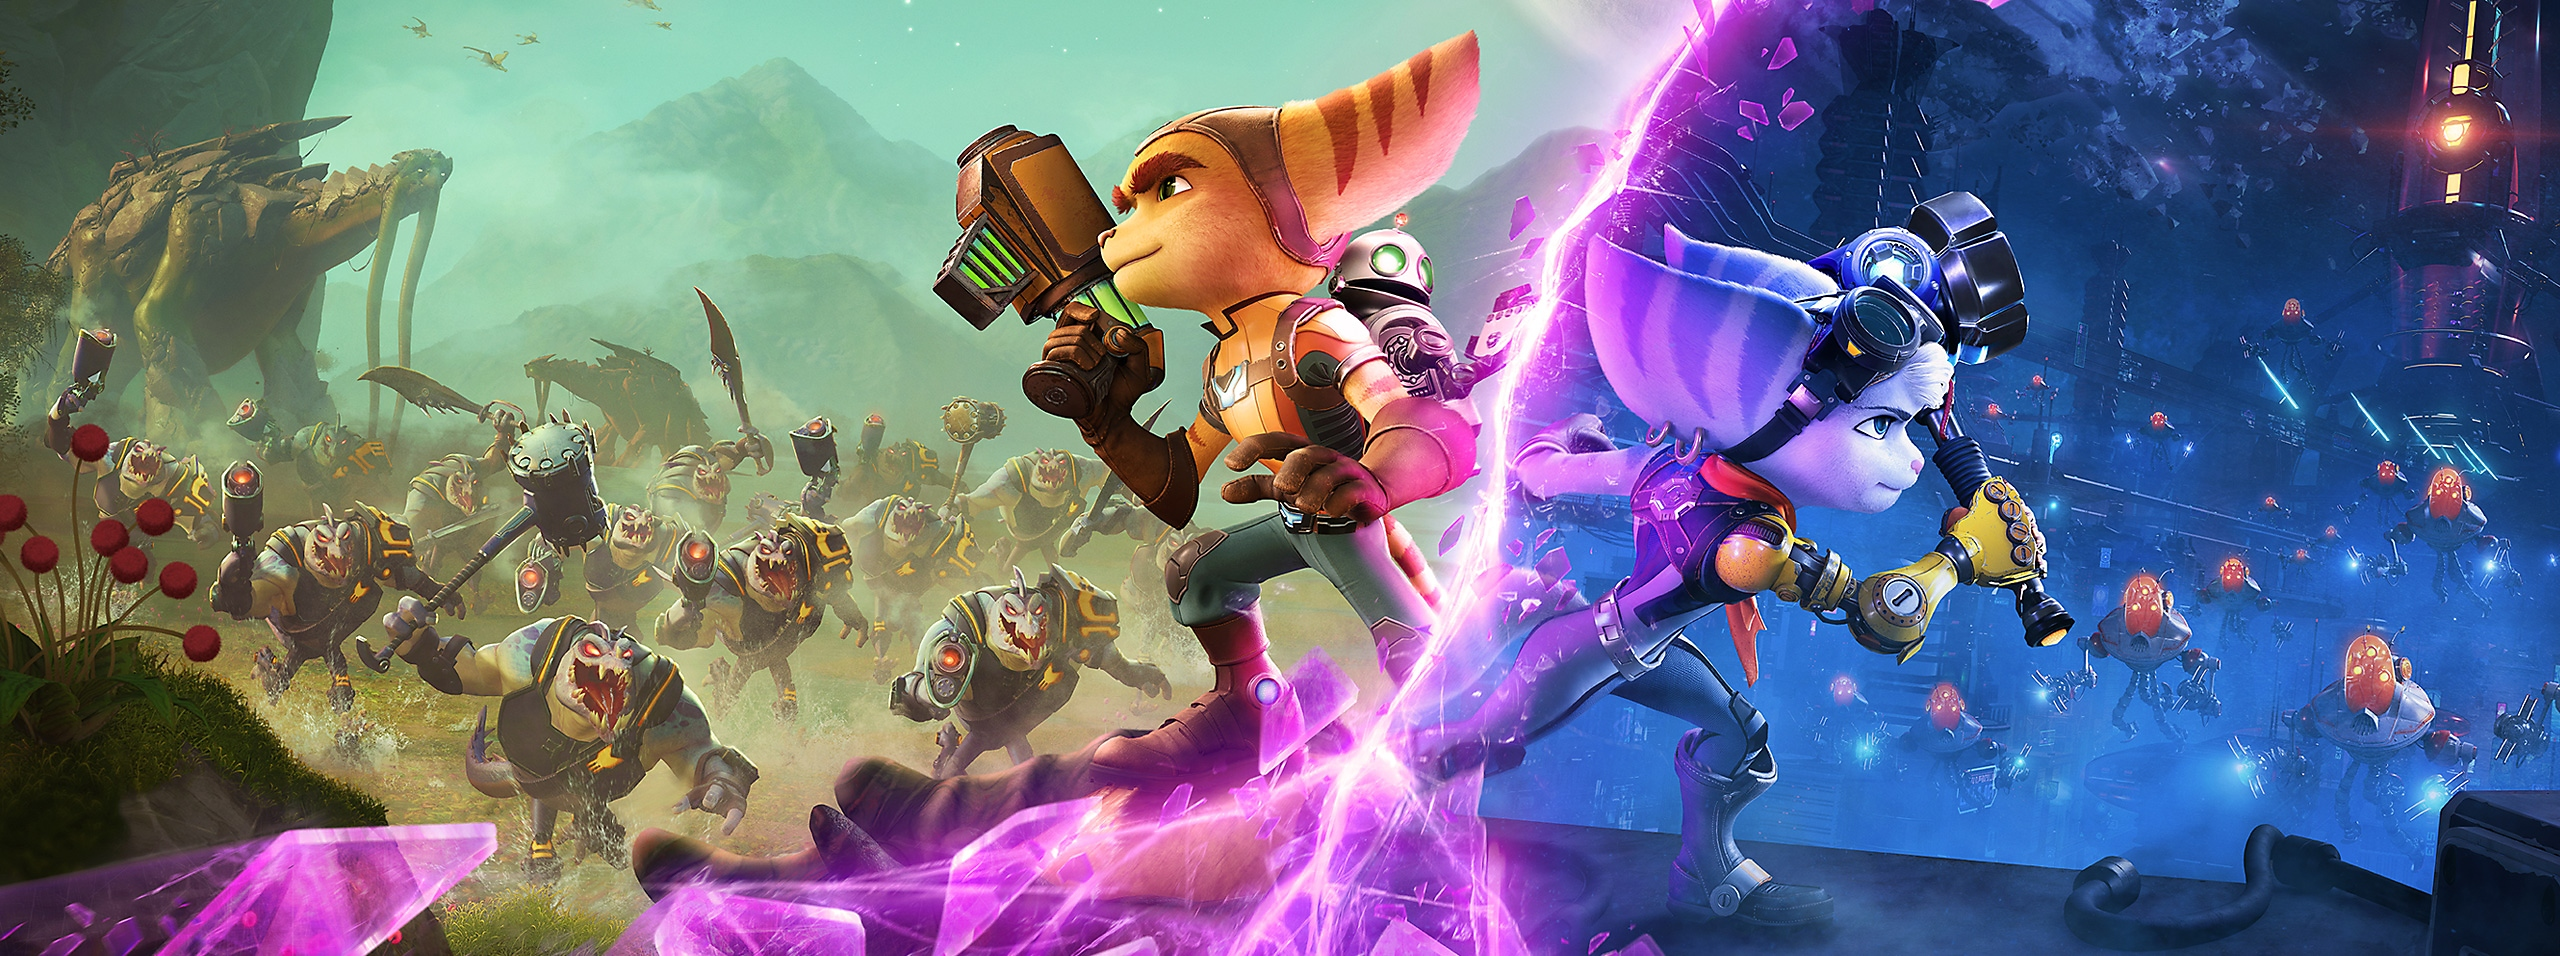 Ratchet and Clank: Rift Apart - Key Art